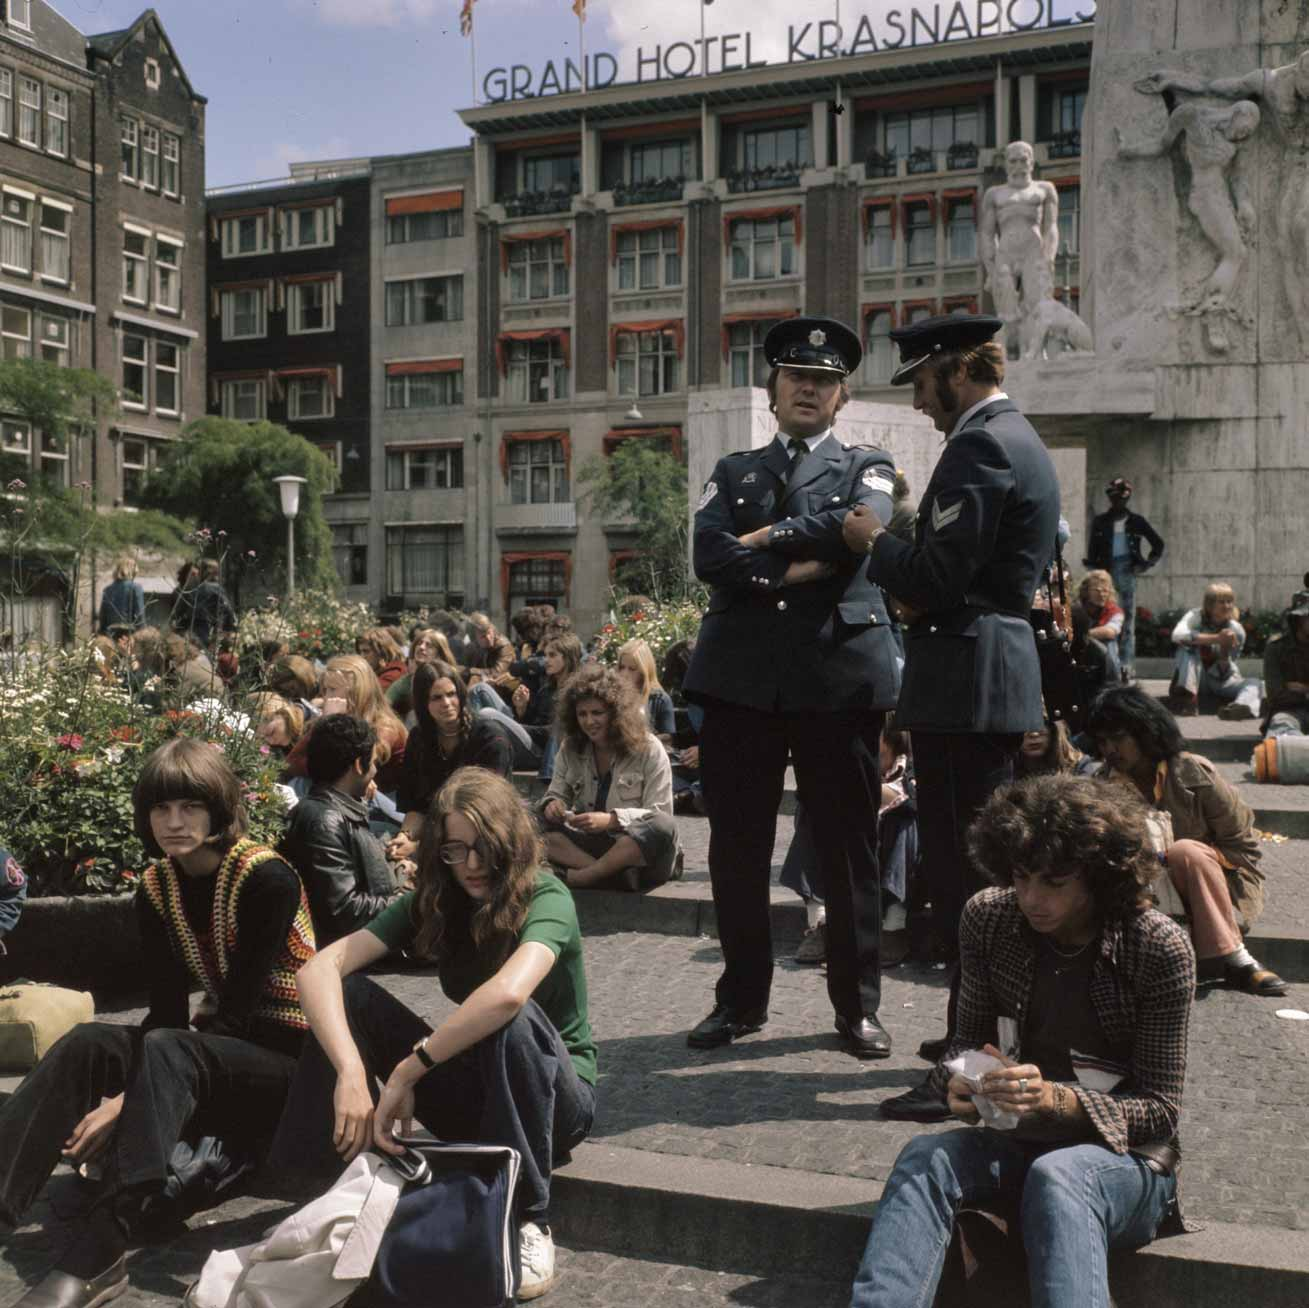 Youth in Amsterdam at Monument on Dam Square in Amsterdam, 1973. <br>Photographer: Bert Verhoeff / Anefo, Courtesy of the National Archives of the Netherlands (Public Domain).